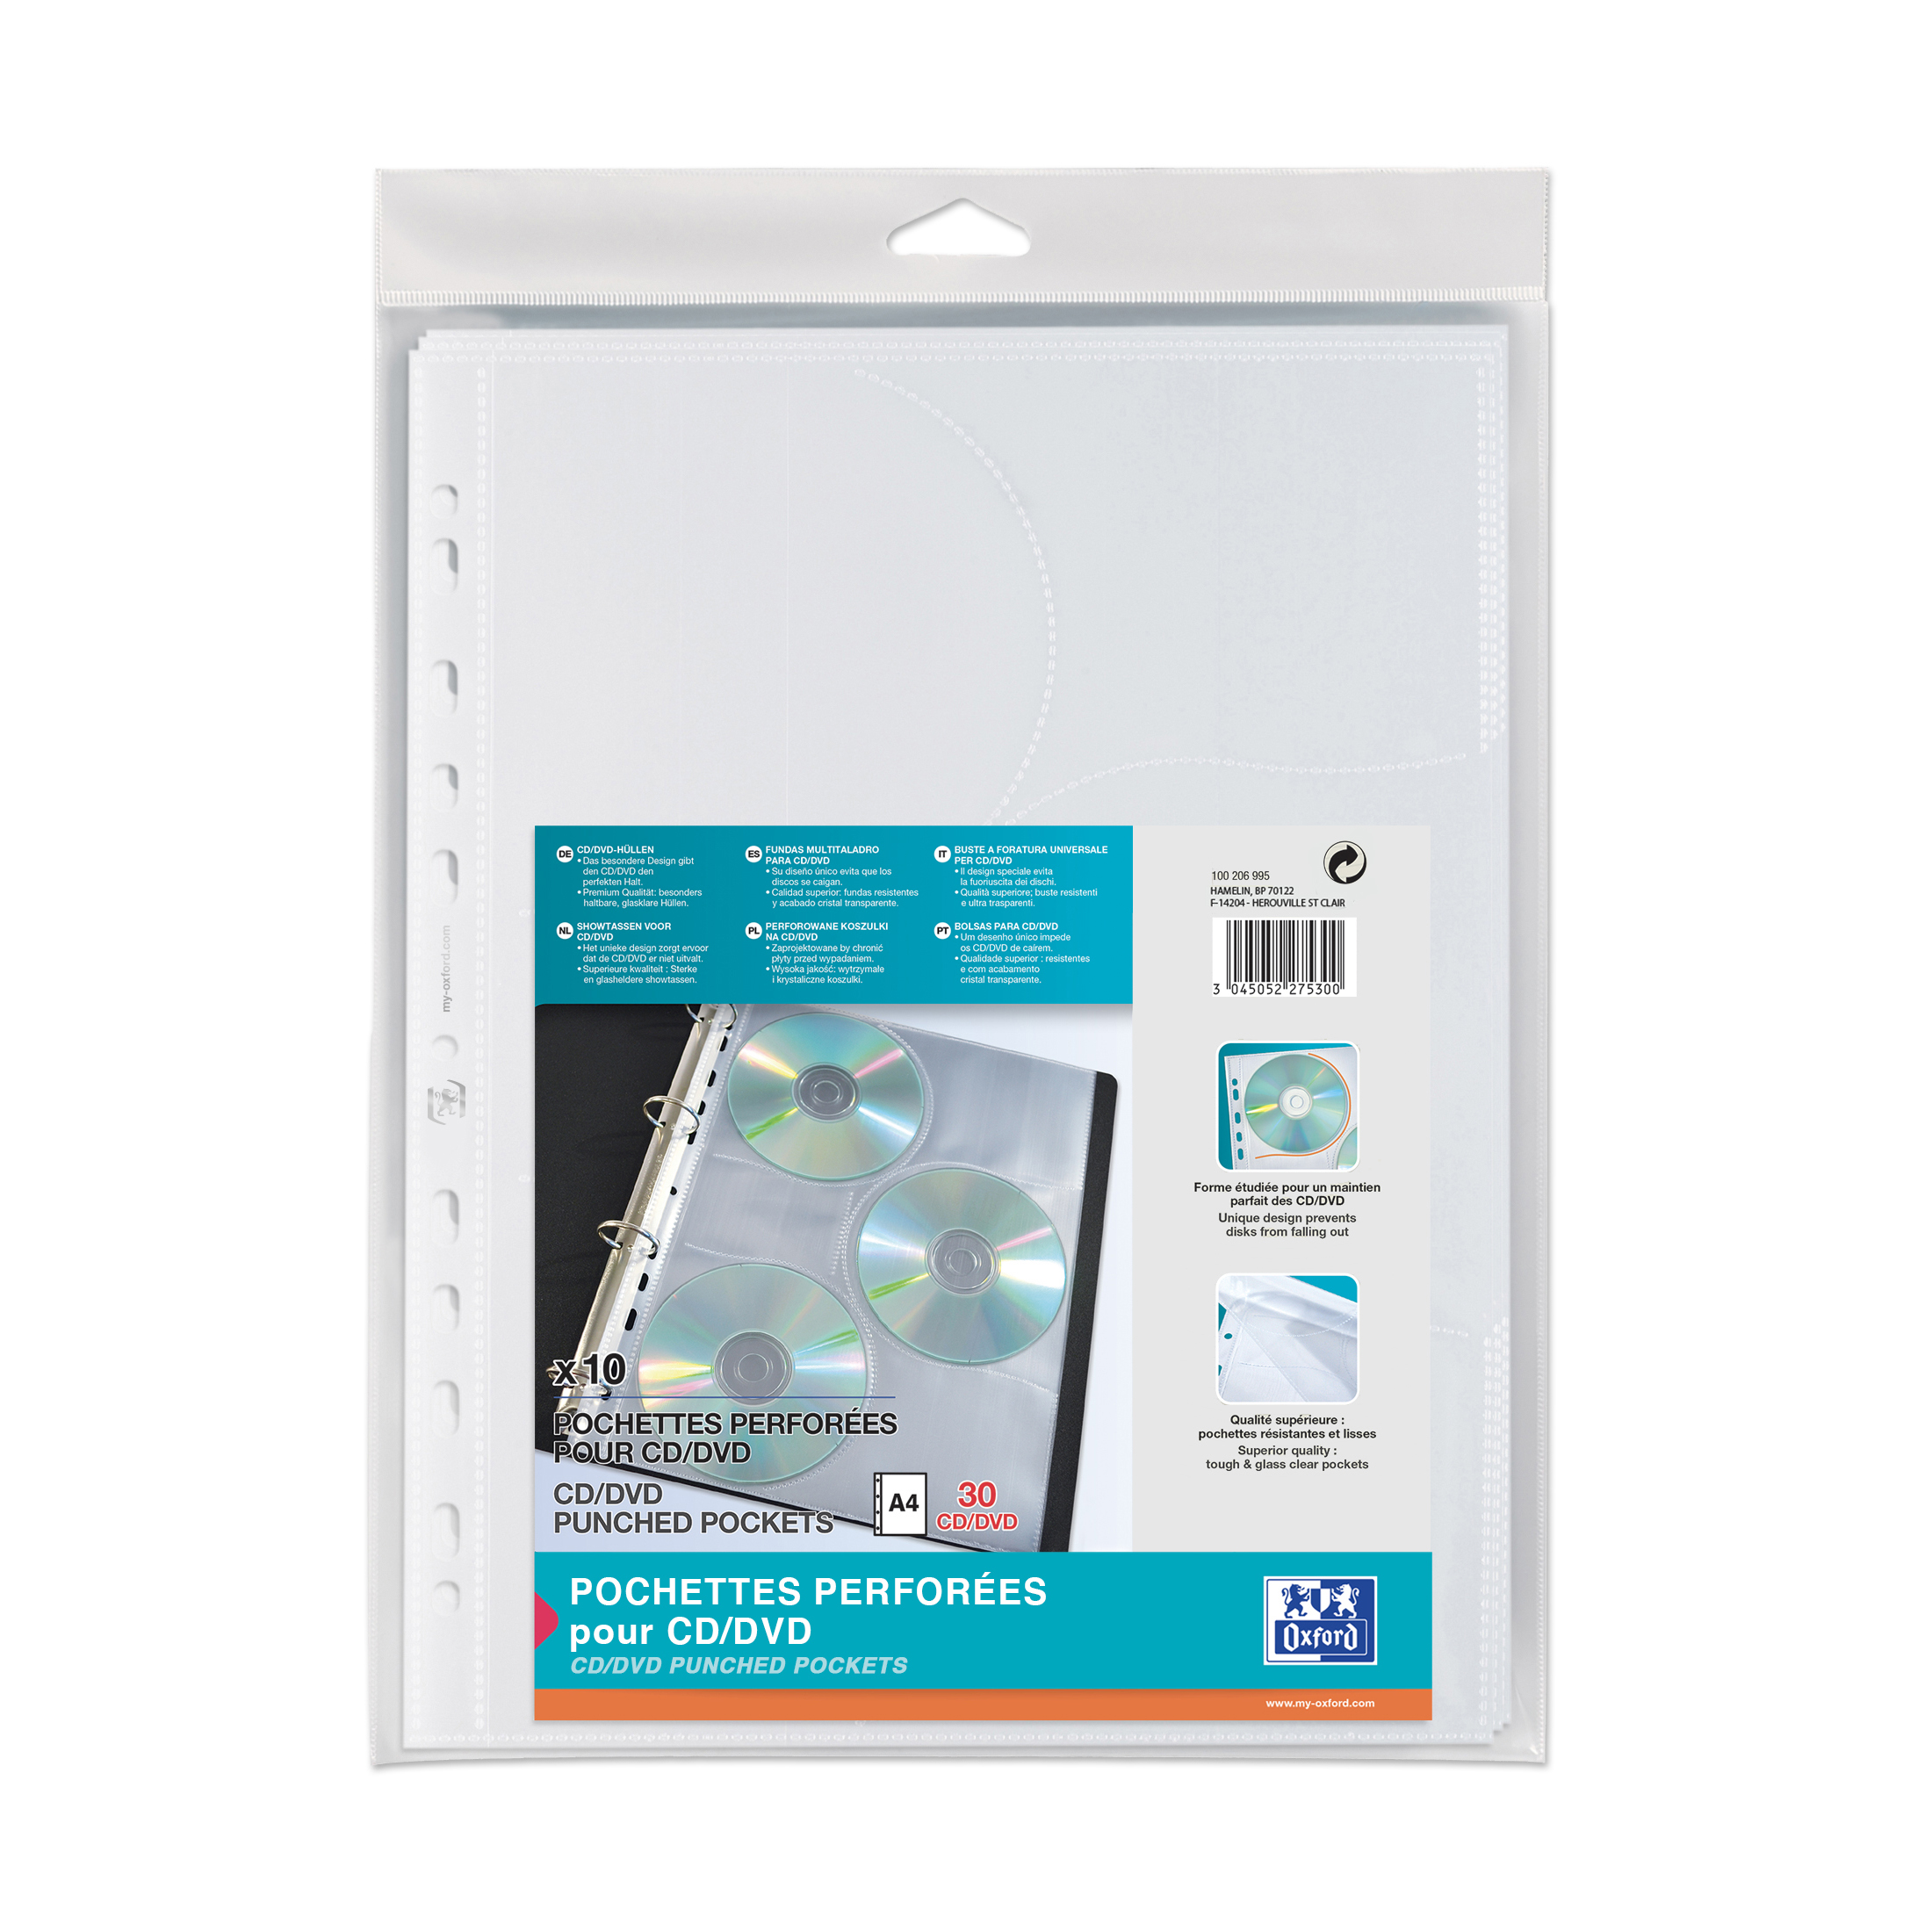 Plastic Pockets Oxford CD/DVD Punched Pockets 200 Micron Glass Clear Ref 100206995 Pack 10